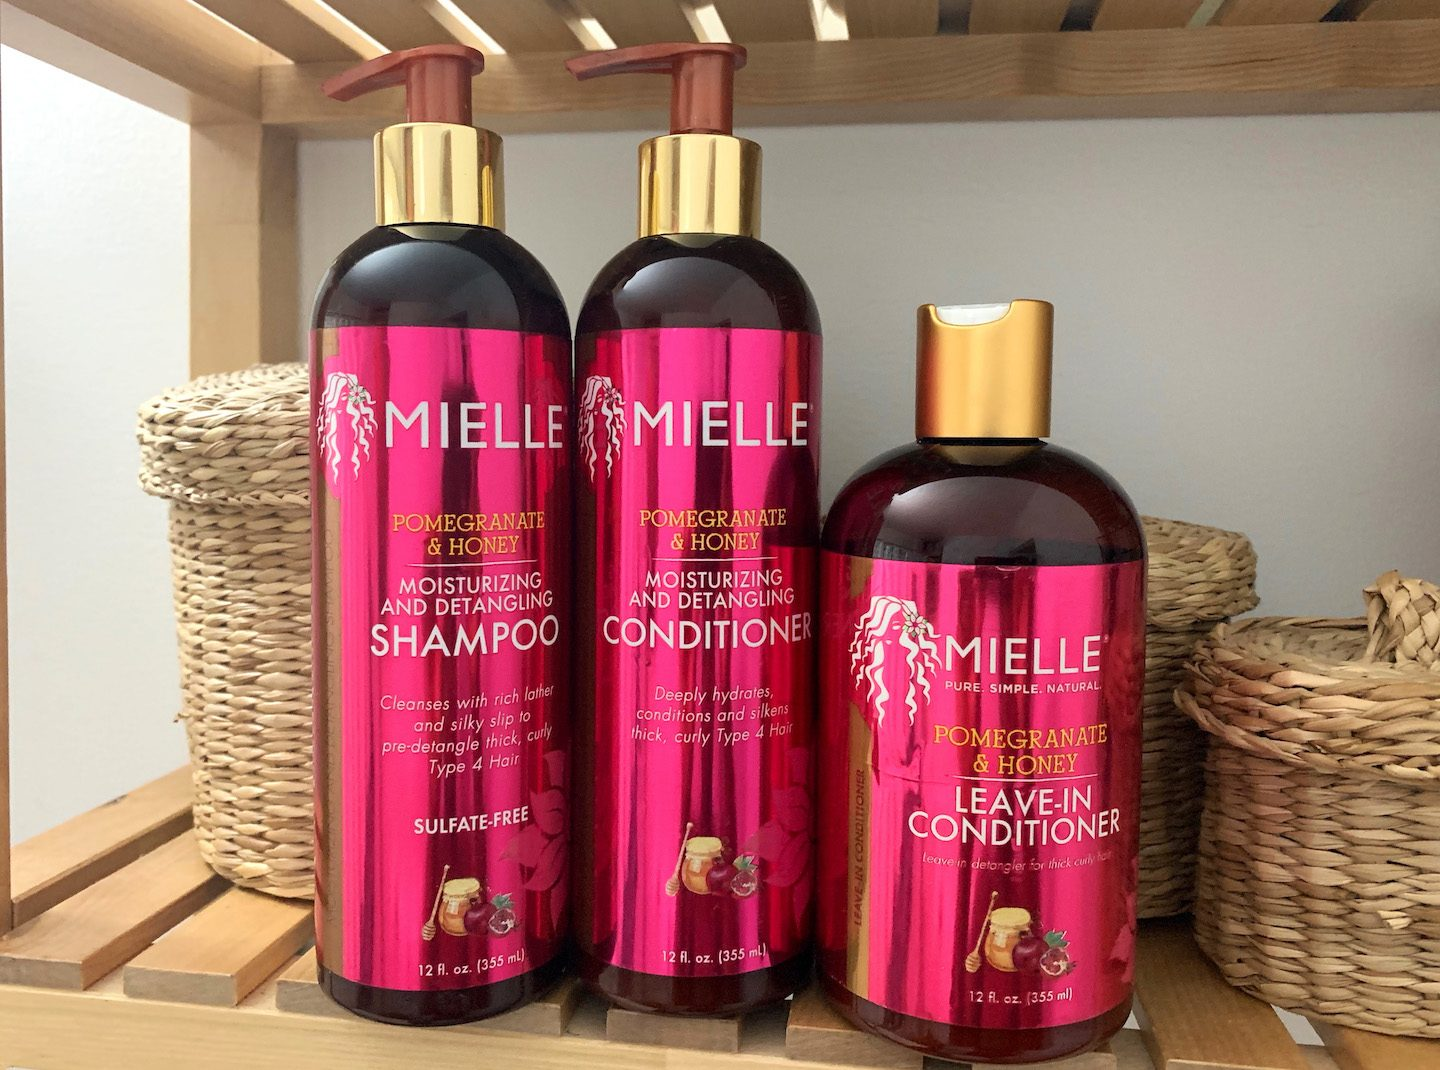 Mielle Organics Pomegranate & Honey Collection Review